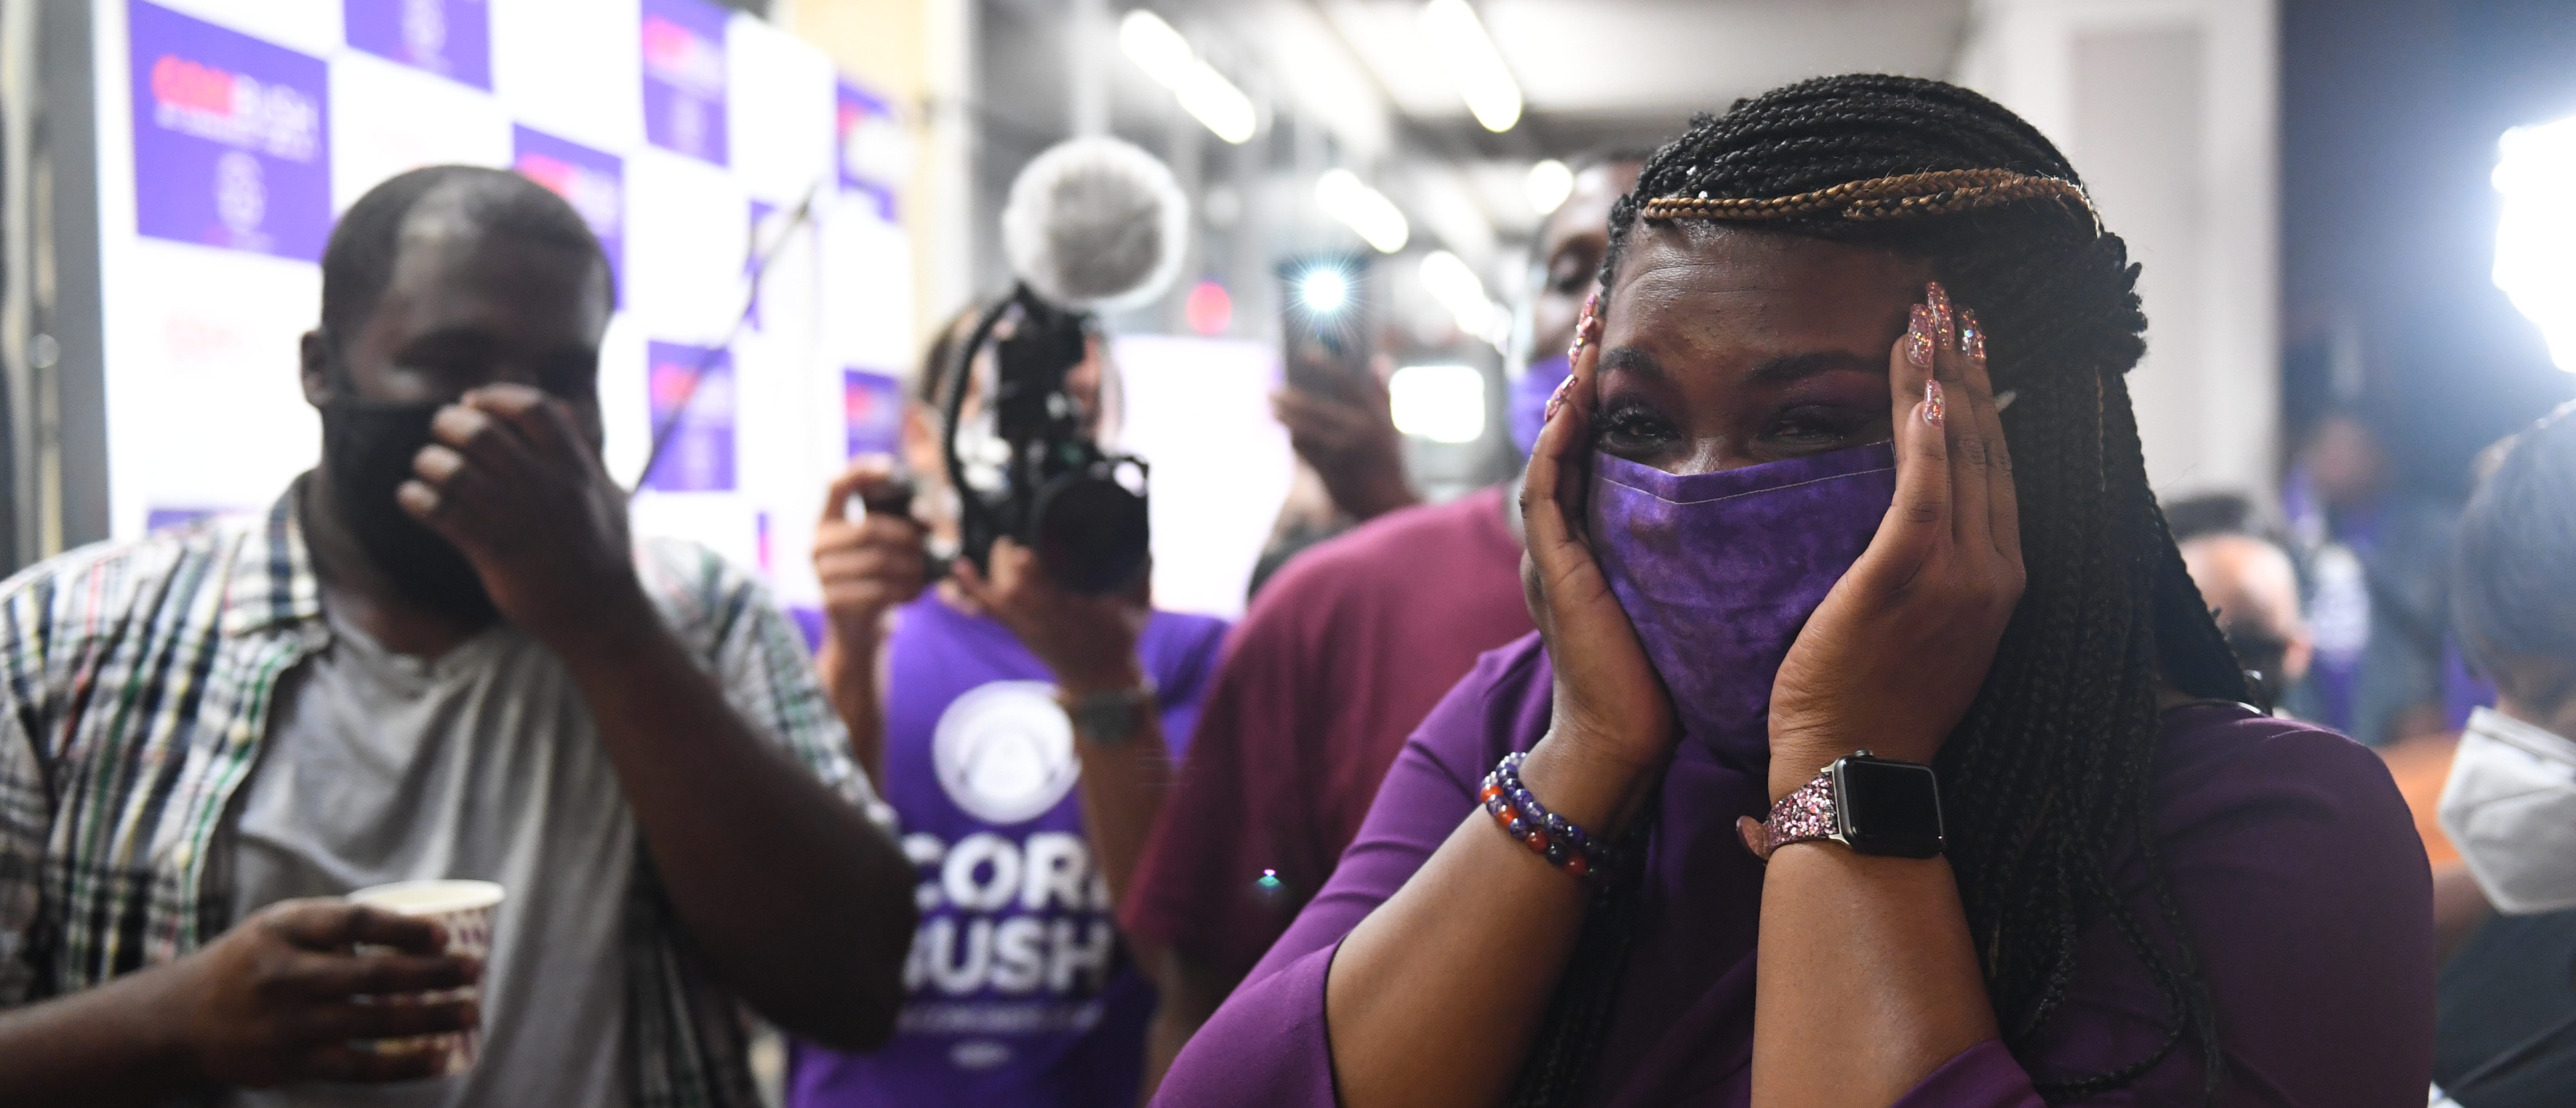 ST. LOUIS, MO - AUGUST 04: Missouri Democratic congressional candidate Cori Bush celebrates with friends and family at her campaign office on August 4, 2020 in St. Louis, Missouri. Bush, an activist backed by the progressive group Justice Democrats, defeated 10-term incumbent Rep. William Lacy Clay (D-MO) in Tuesday's primary election to become the first black woman elected to represent the state of Missouri in congress. (Photo by Michael B. Thomas/Getty Images)